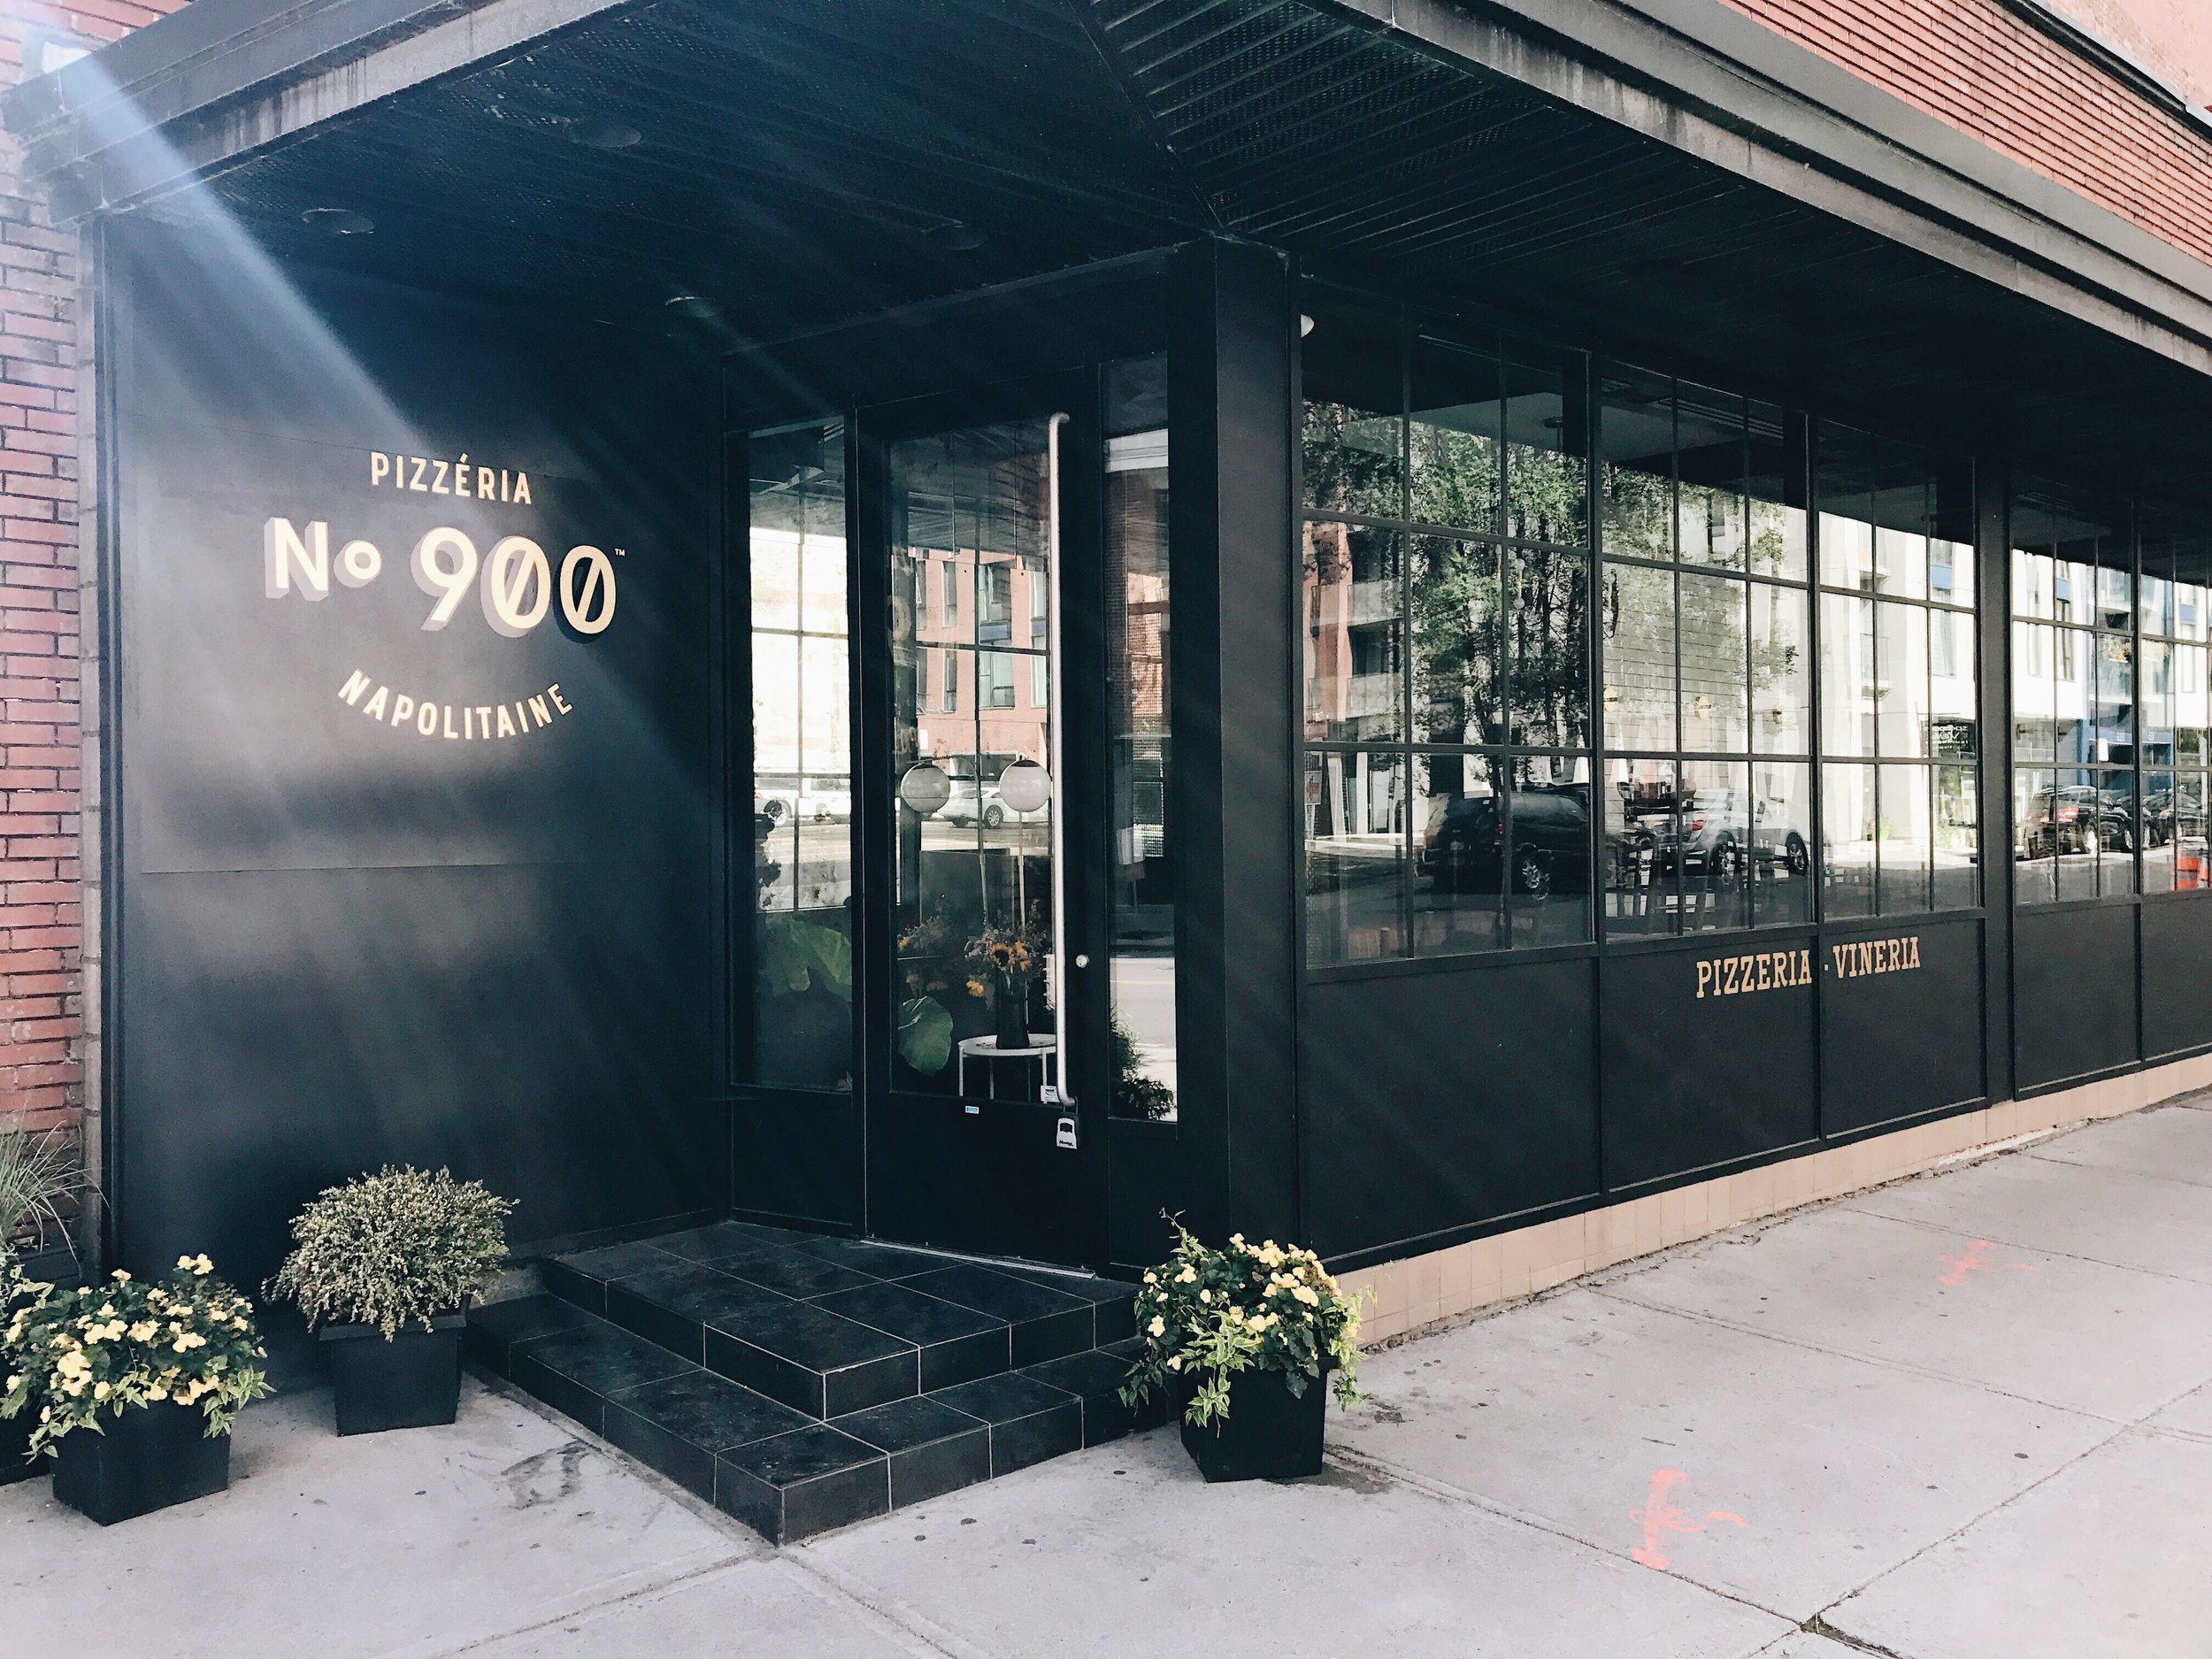 900 Pizzeria, Nyla Free Designs Travels Montreal, Weekend Guide, Travel Tips, Canada, Calgary Interior Designer